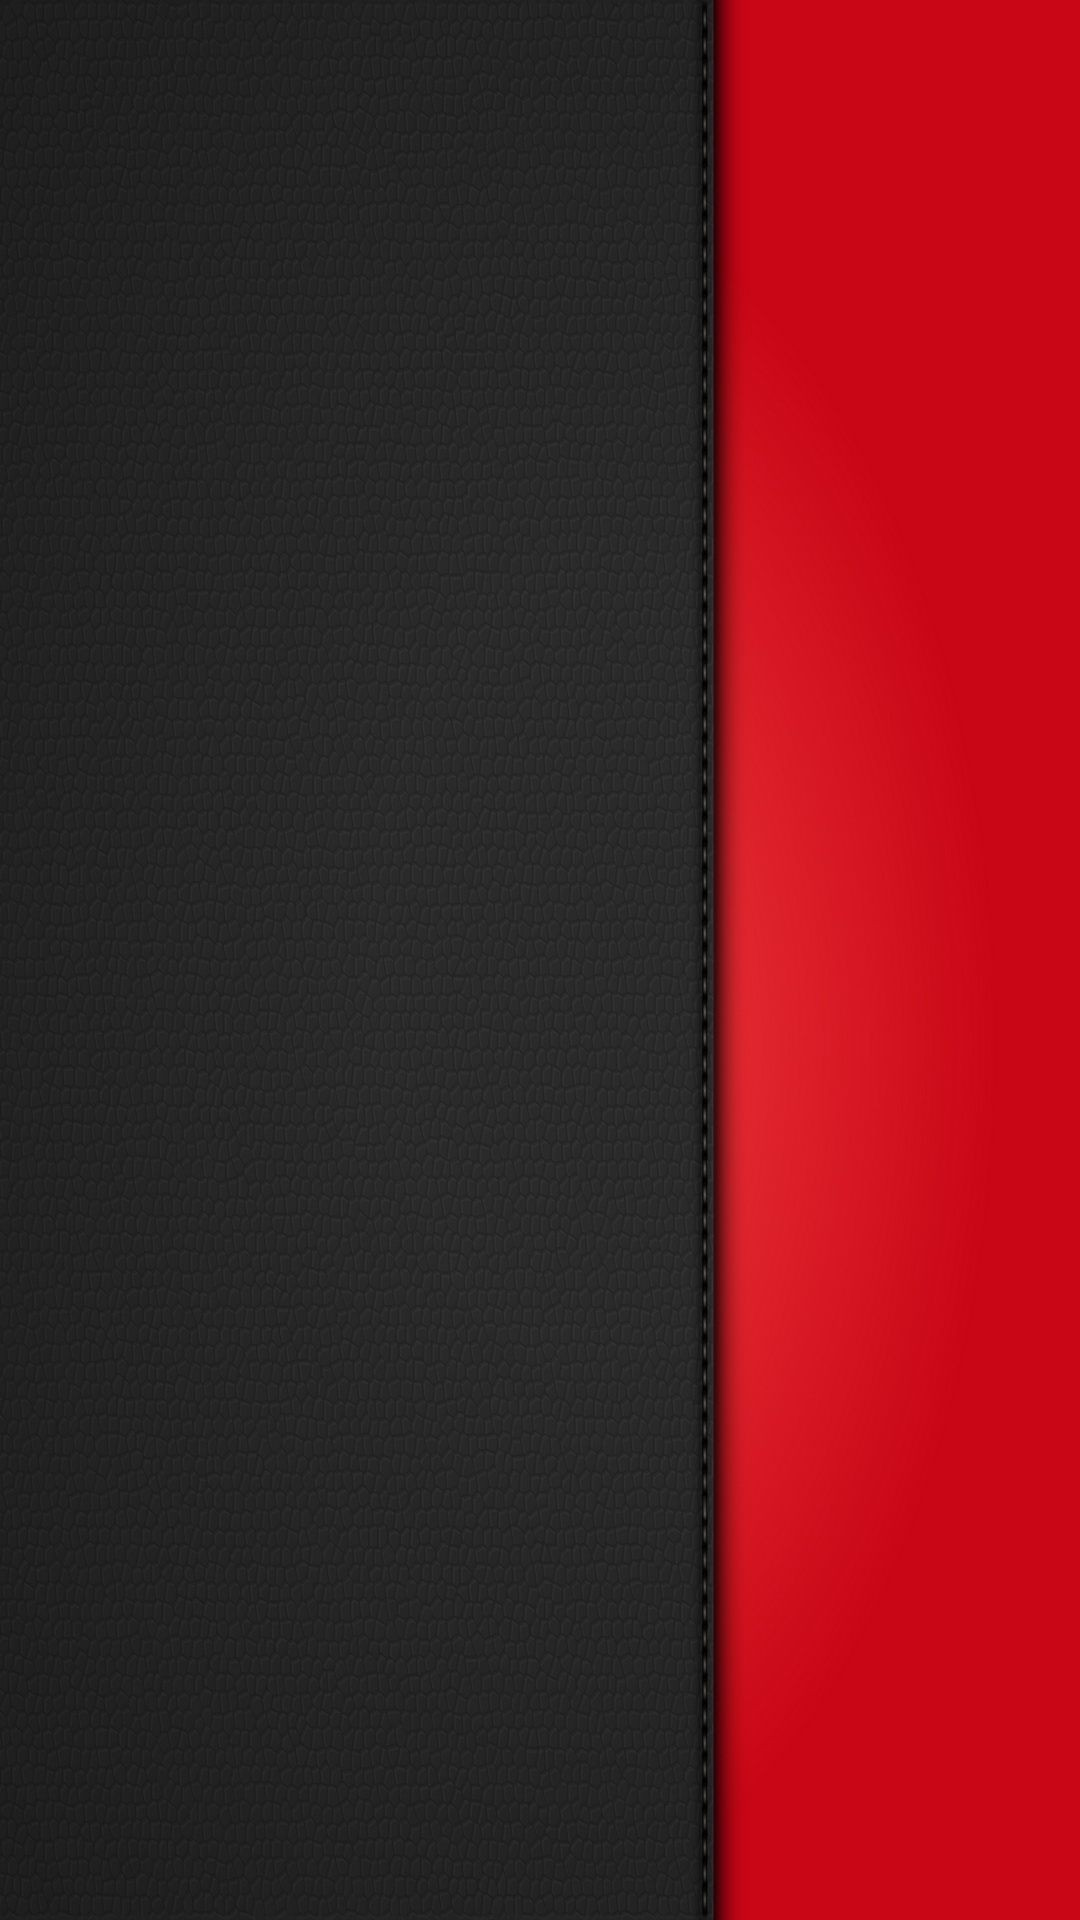 Abstract Carbon Fiber iPhone 6 Plus Wallpapers – carbon, fiber iPhone 6  Plus Wallpapers – textur iphone 6 plus wallpapers: You must have these  great iPhone …